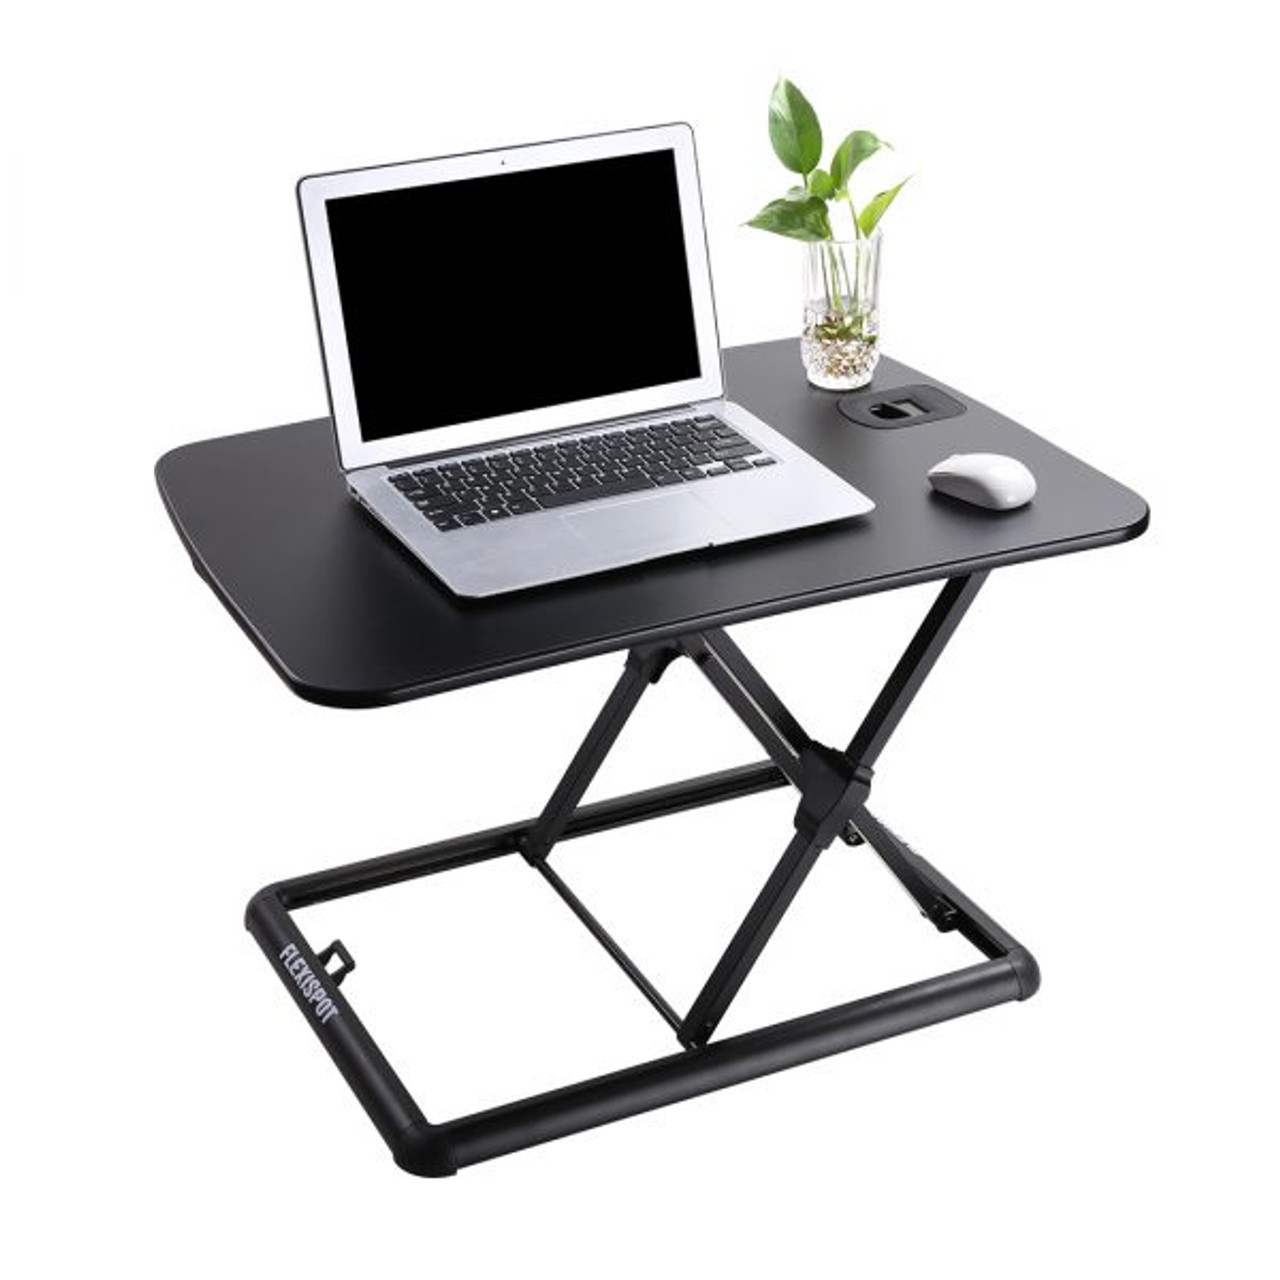 Flexispot Portable Laptop Desk Riser Ml1b 26in